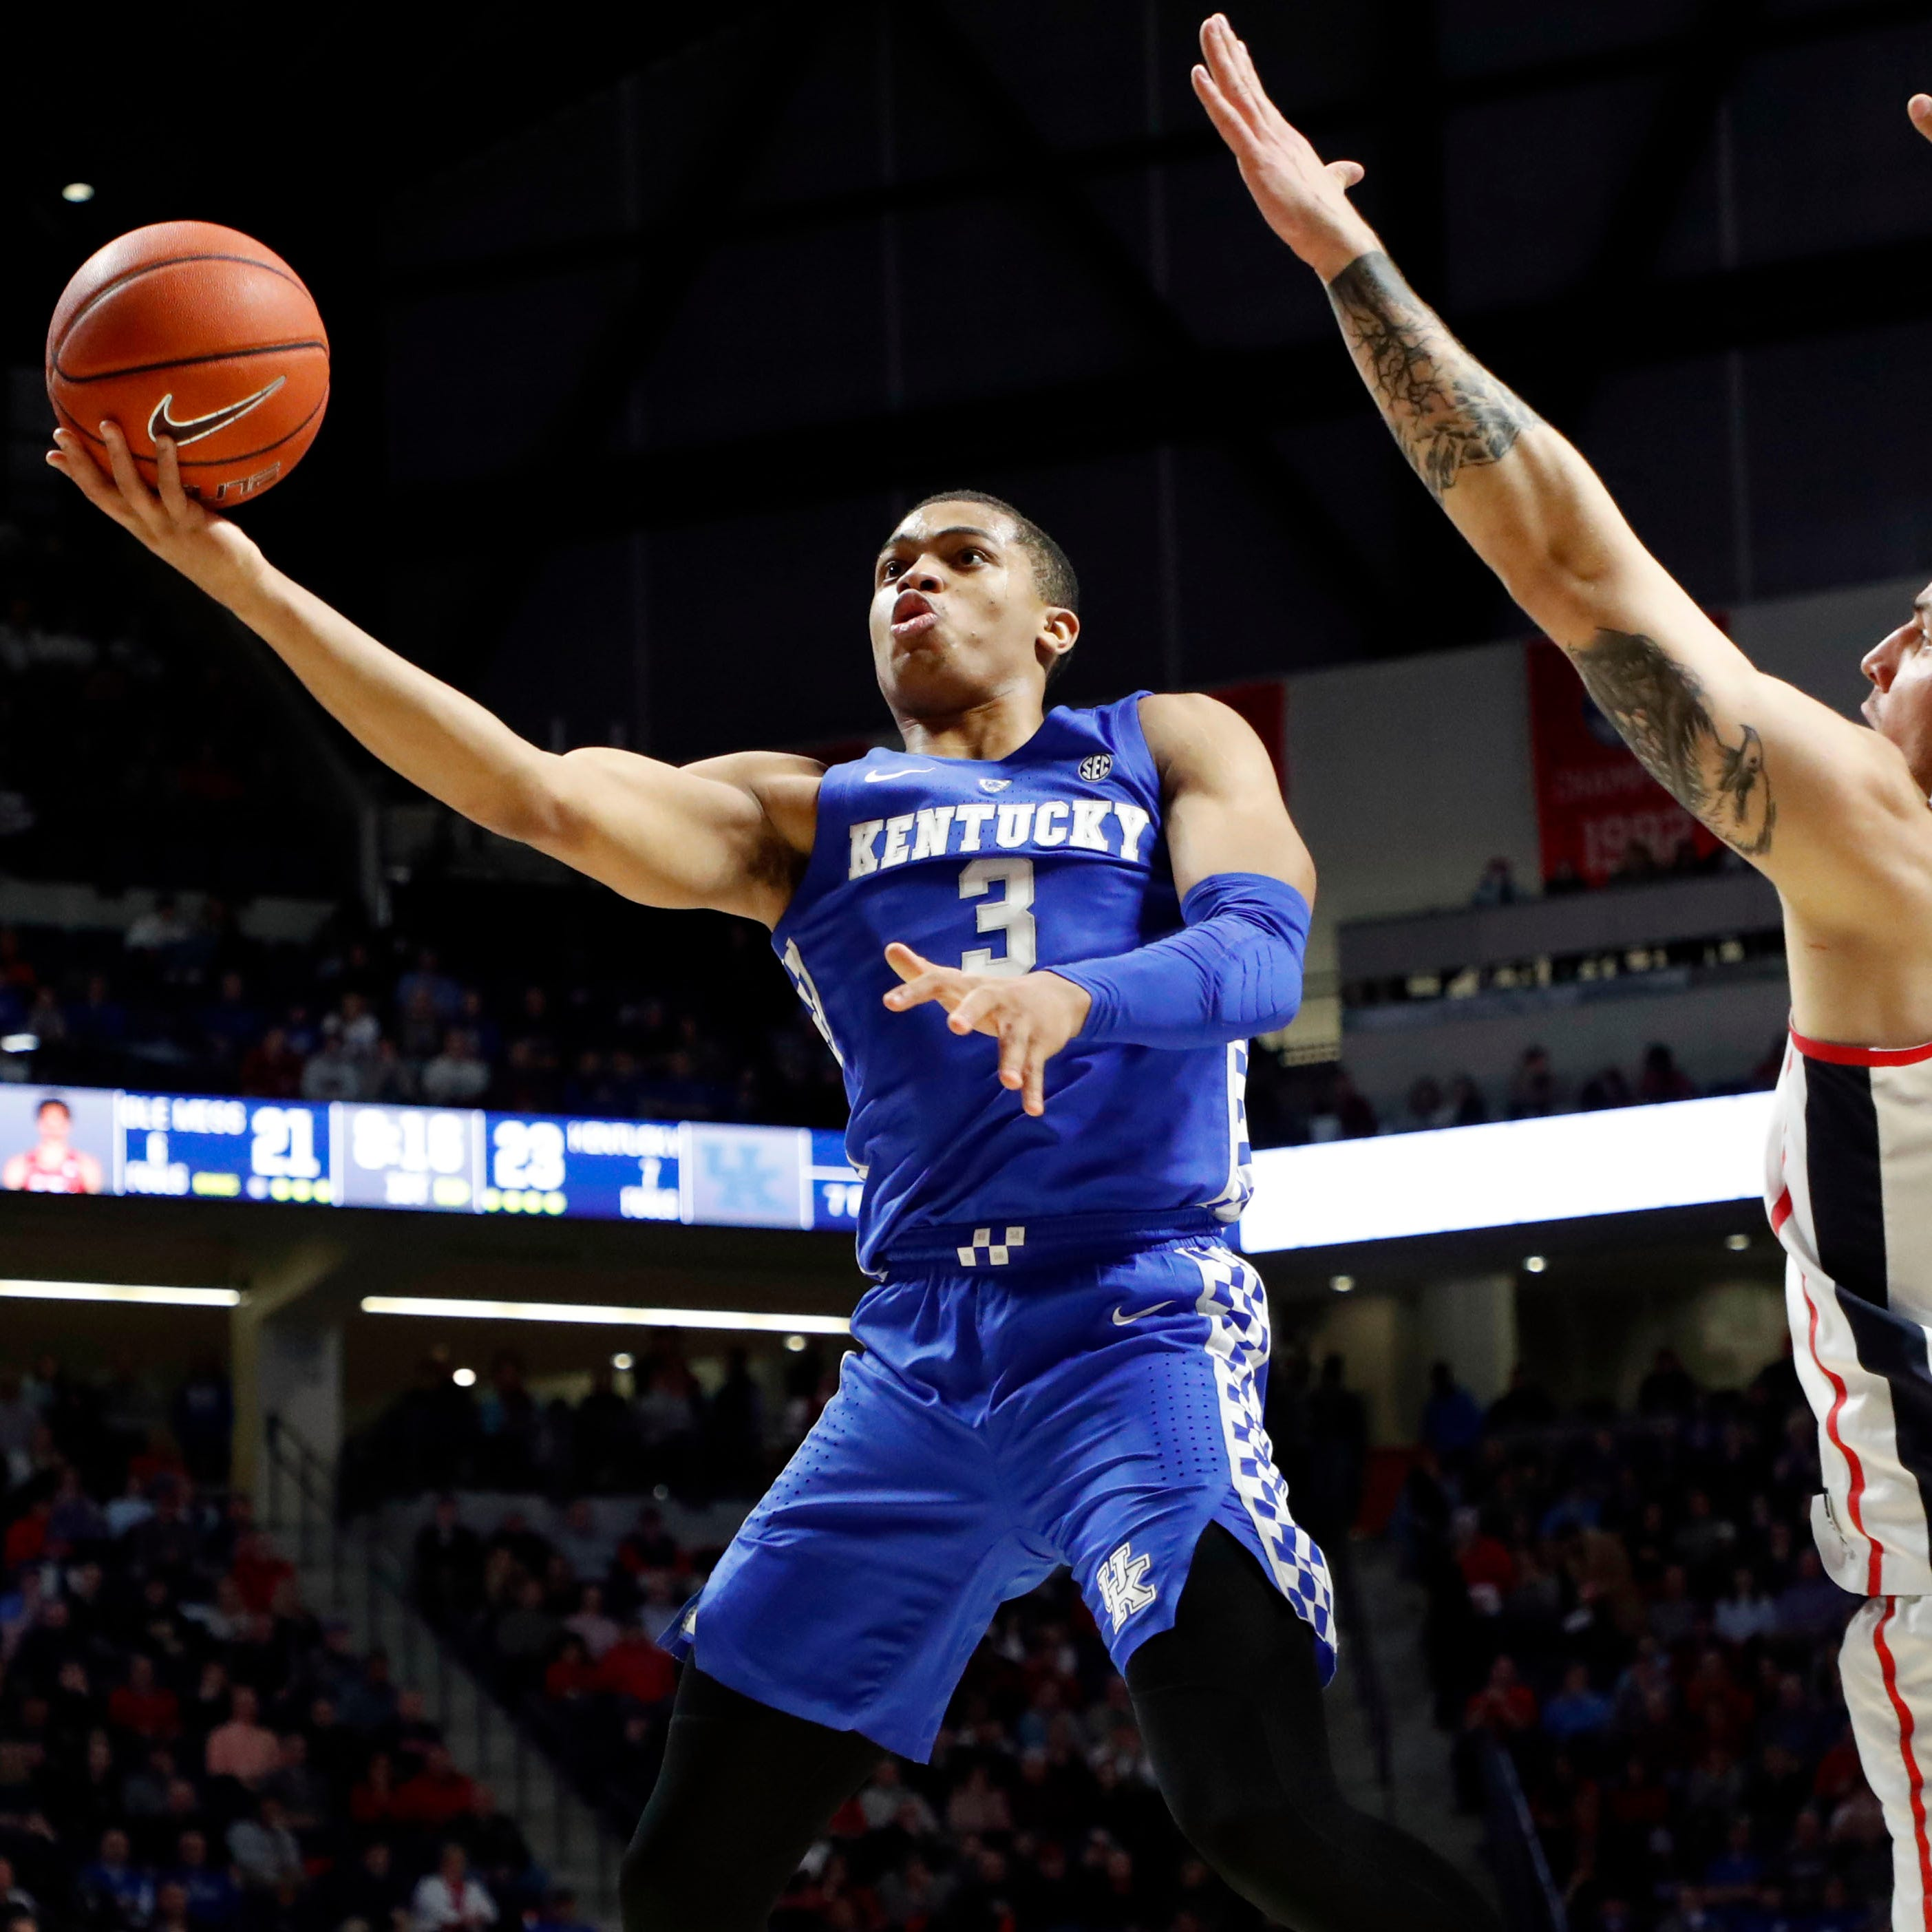 Ole Miss hoops suffers another close loss, loses on senior night versus No. 6 Kentucky